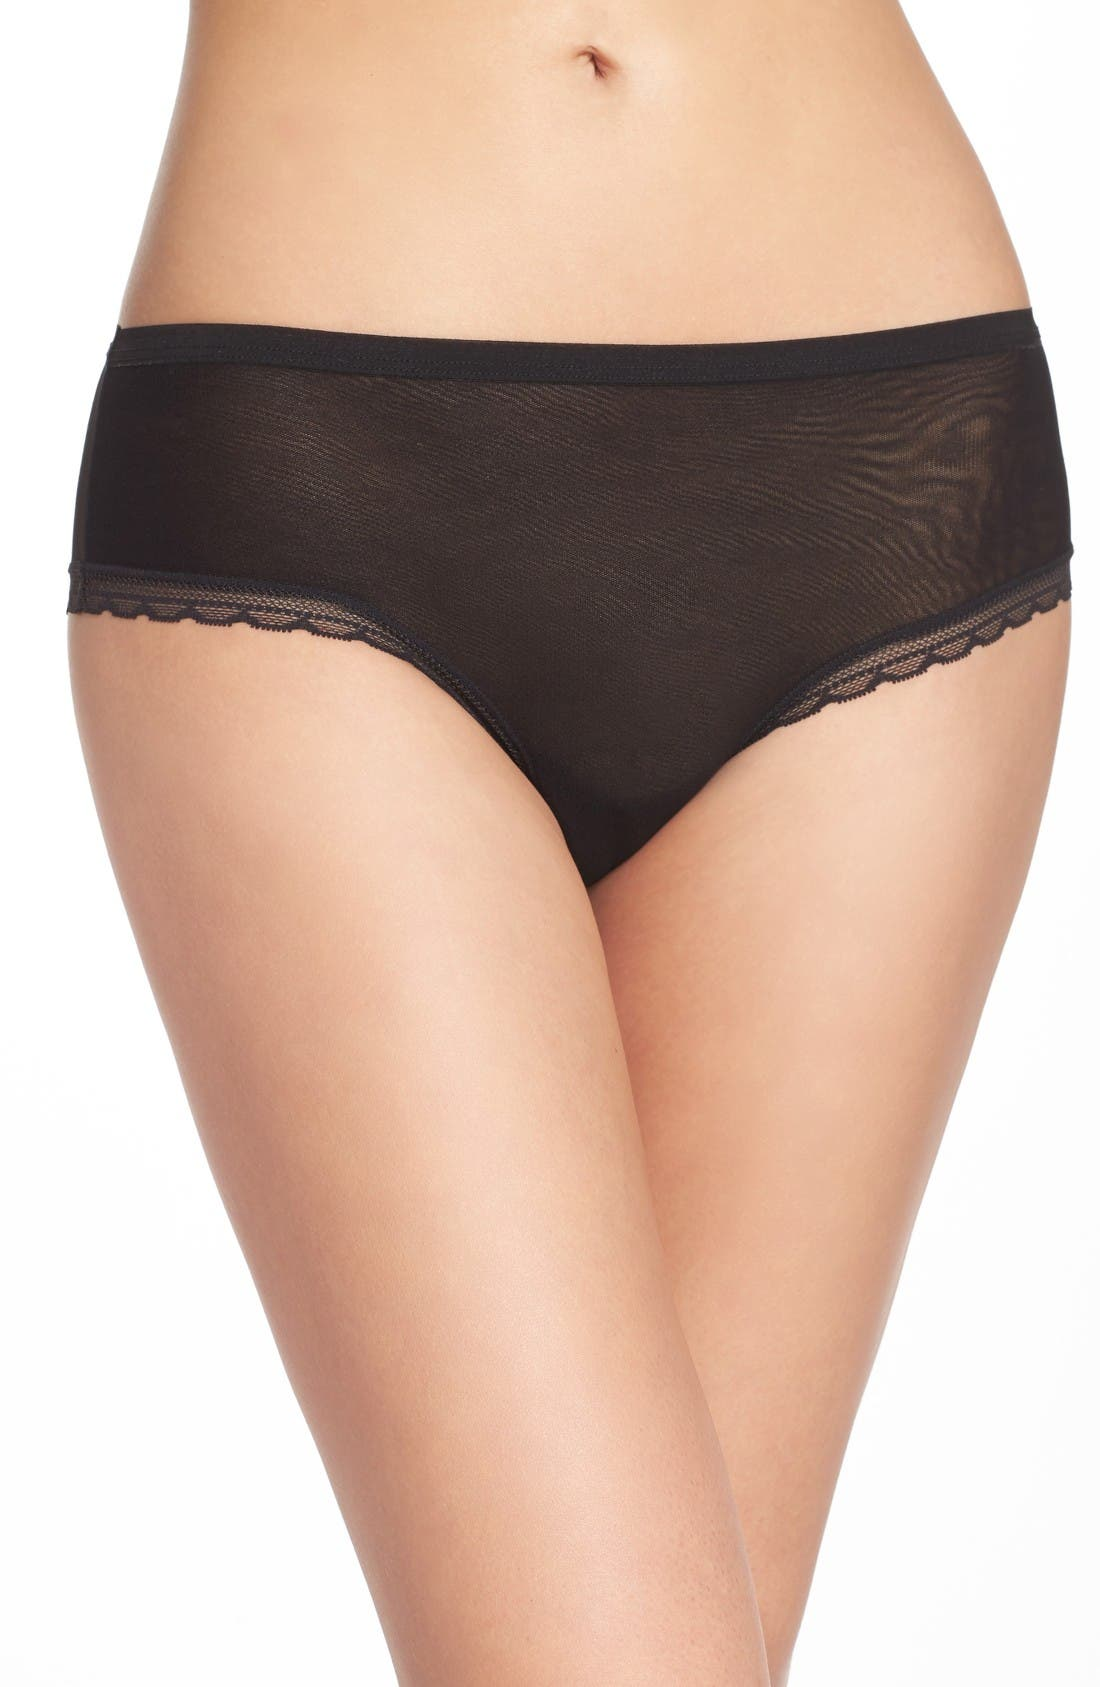 Alternate Image 1 Selected - On Gossamer Modern Mesh Panties (3 for $45)